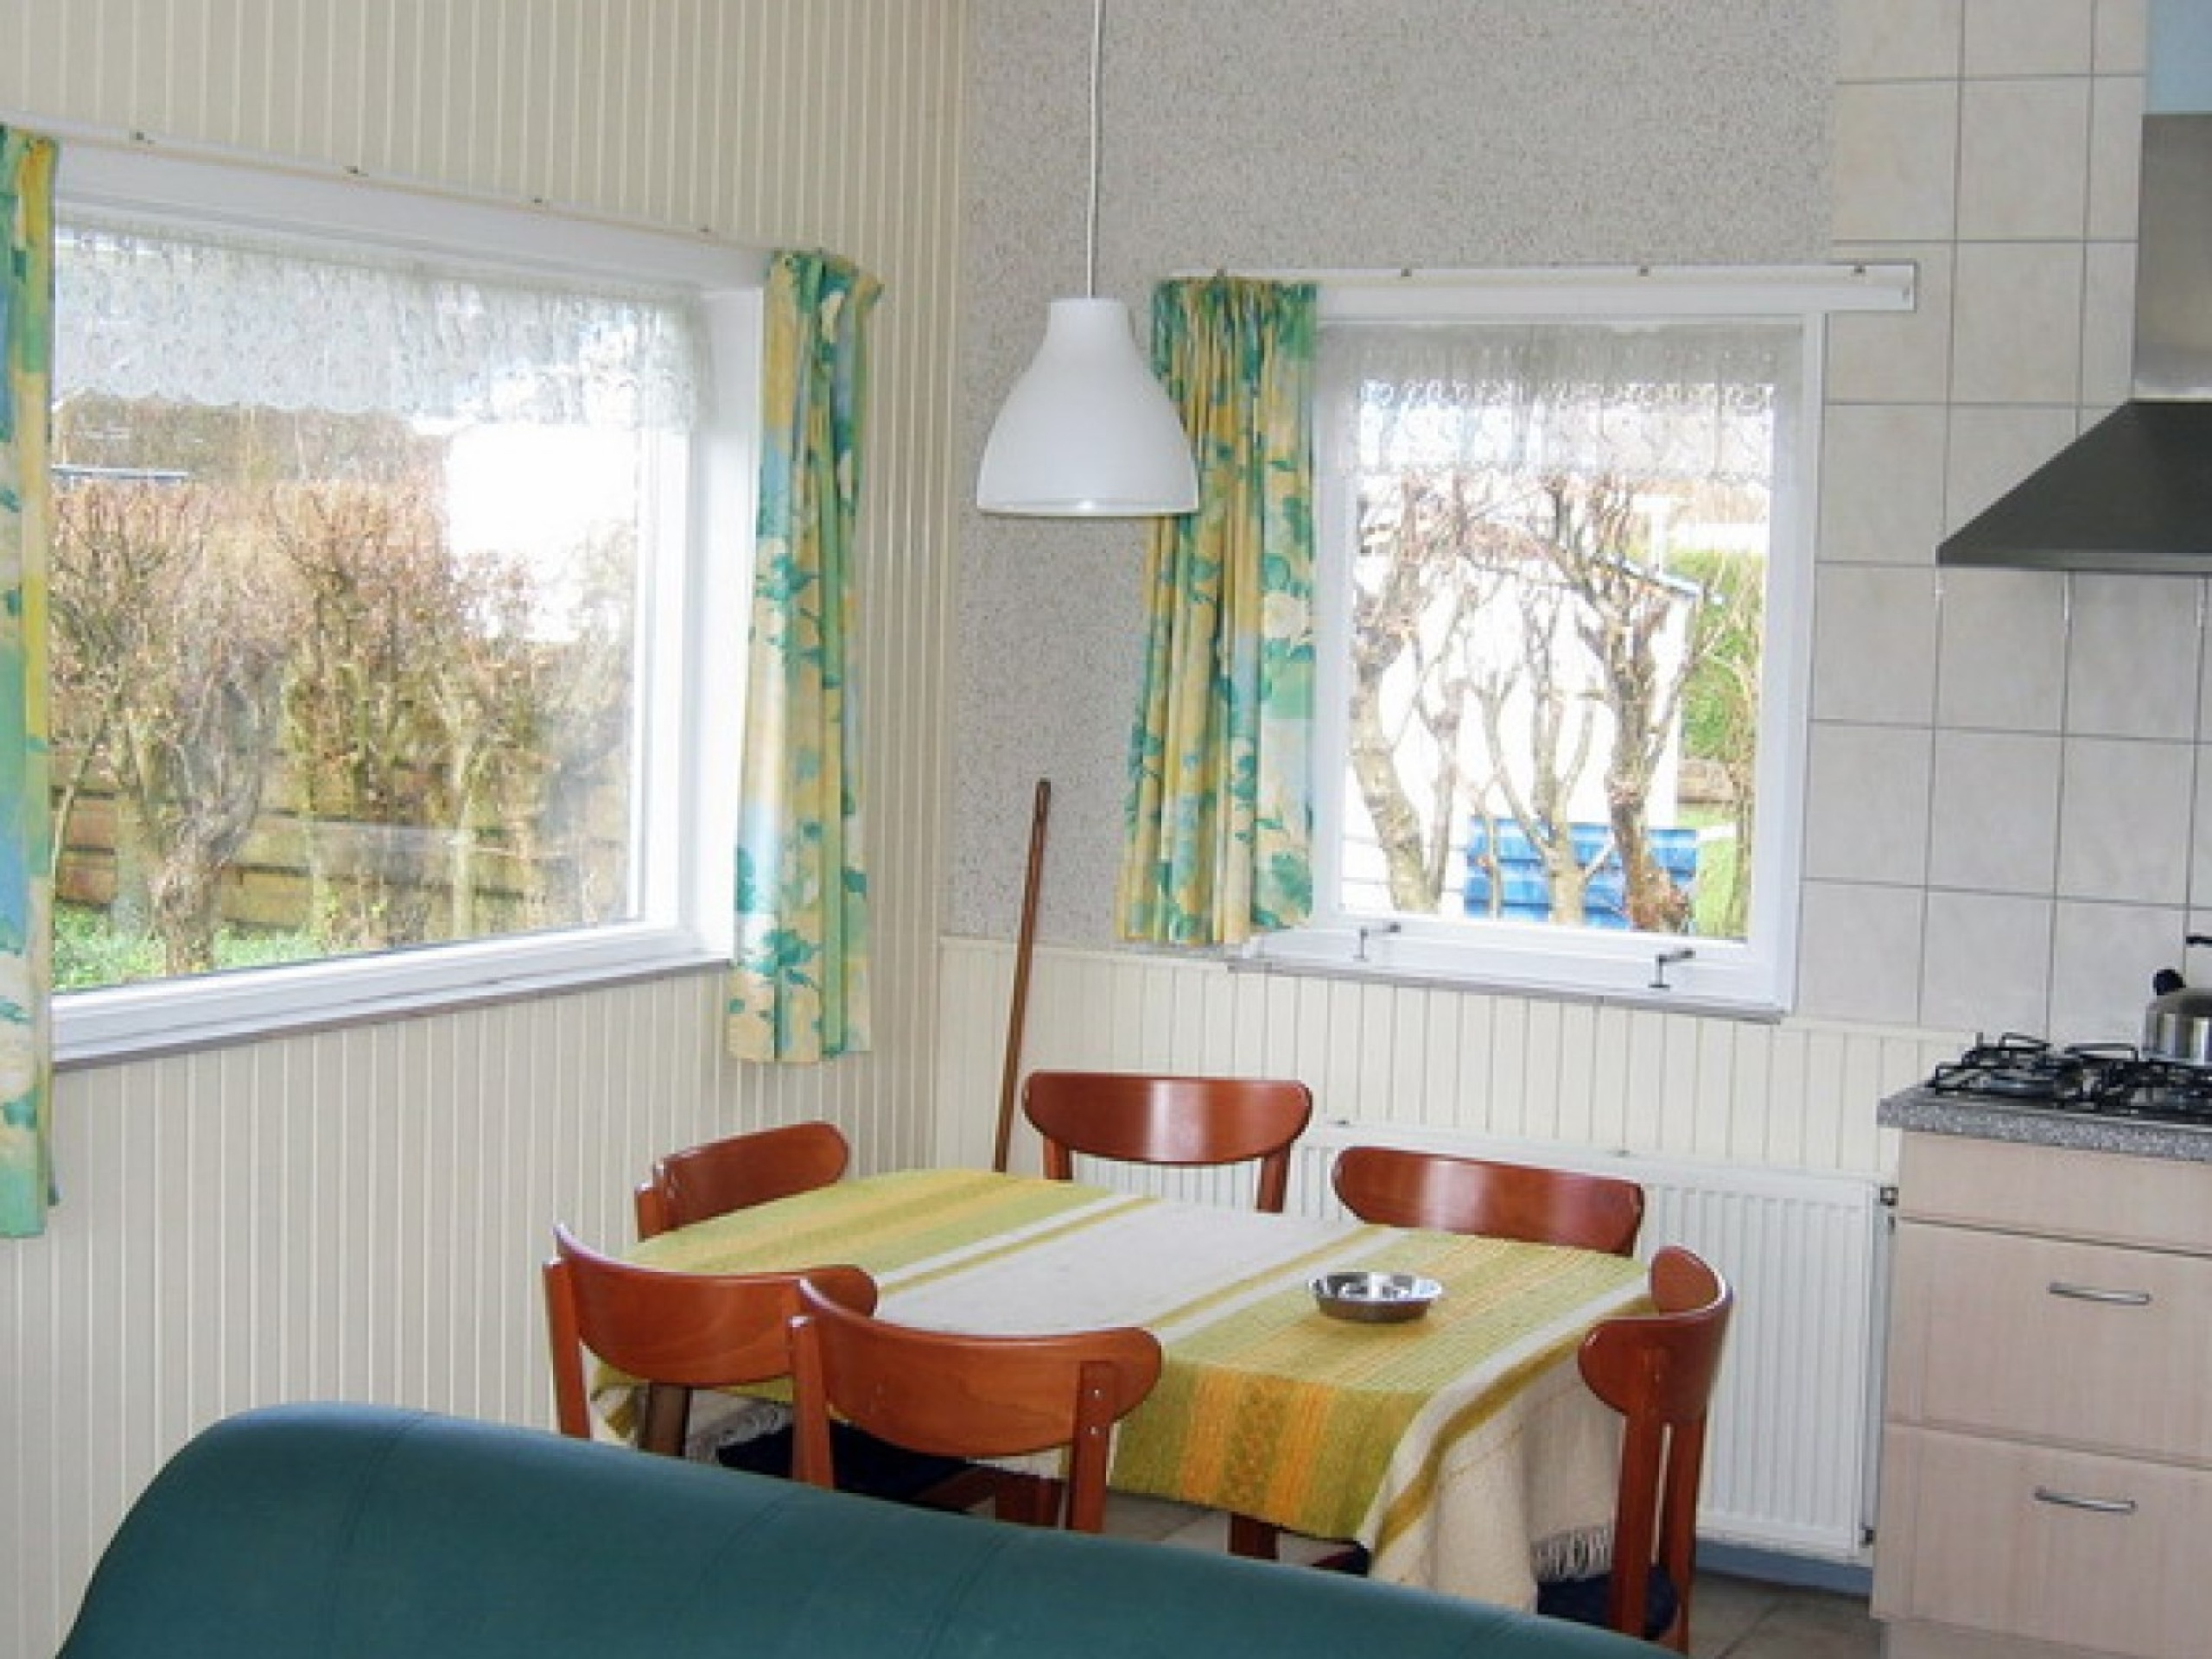 Holiday home near the North Sea, perfect for bird lovers